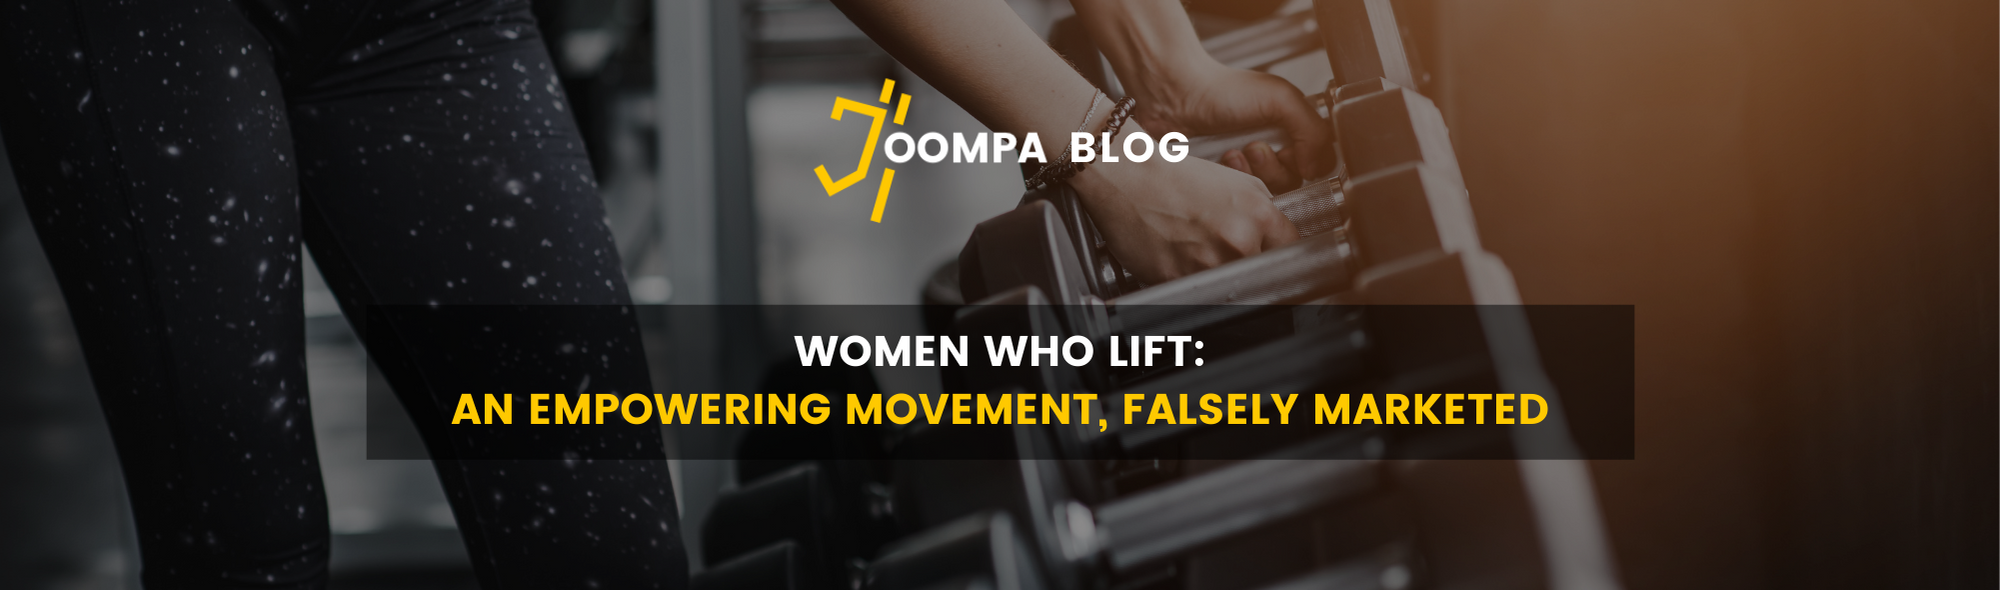 Women Who Lift: An Empowering Movement, Falsely Marketed